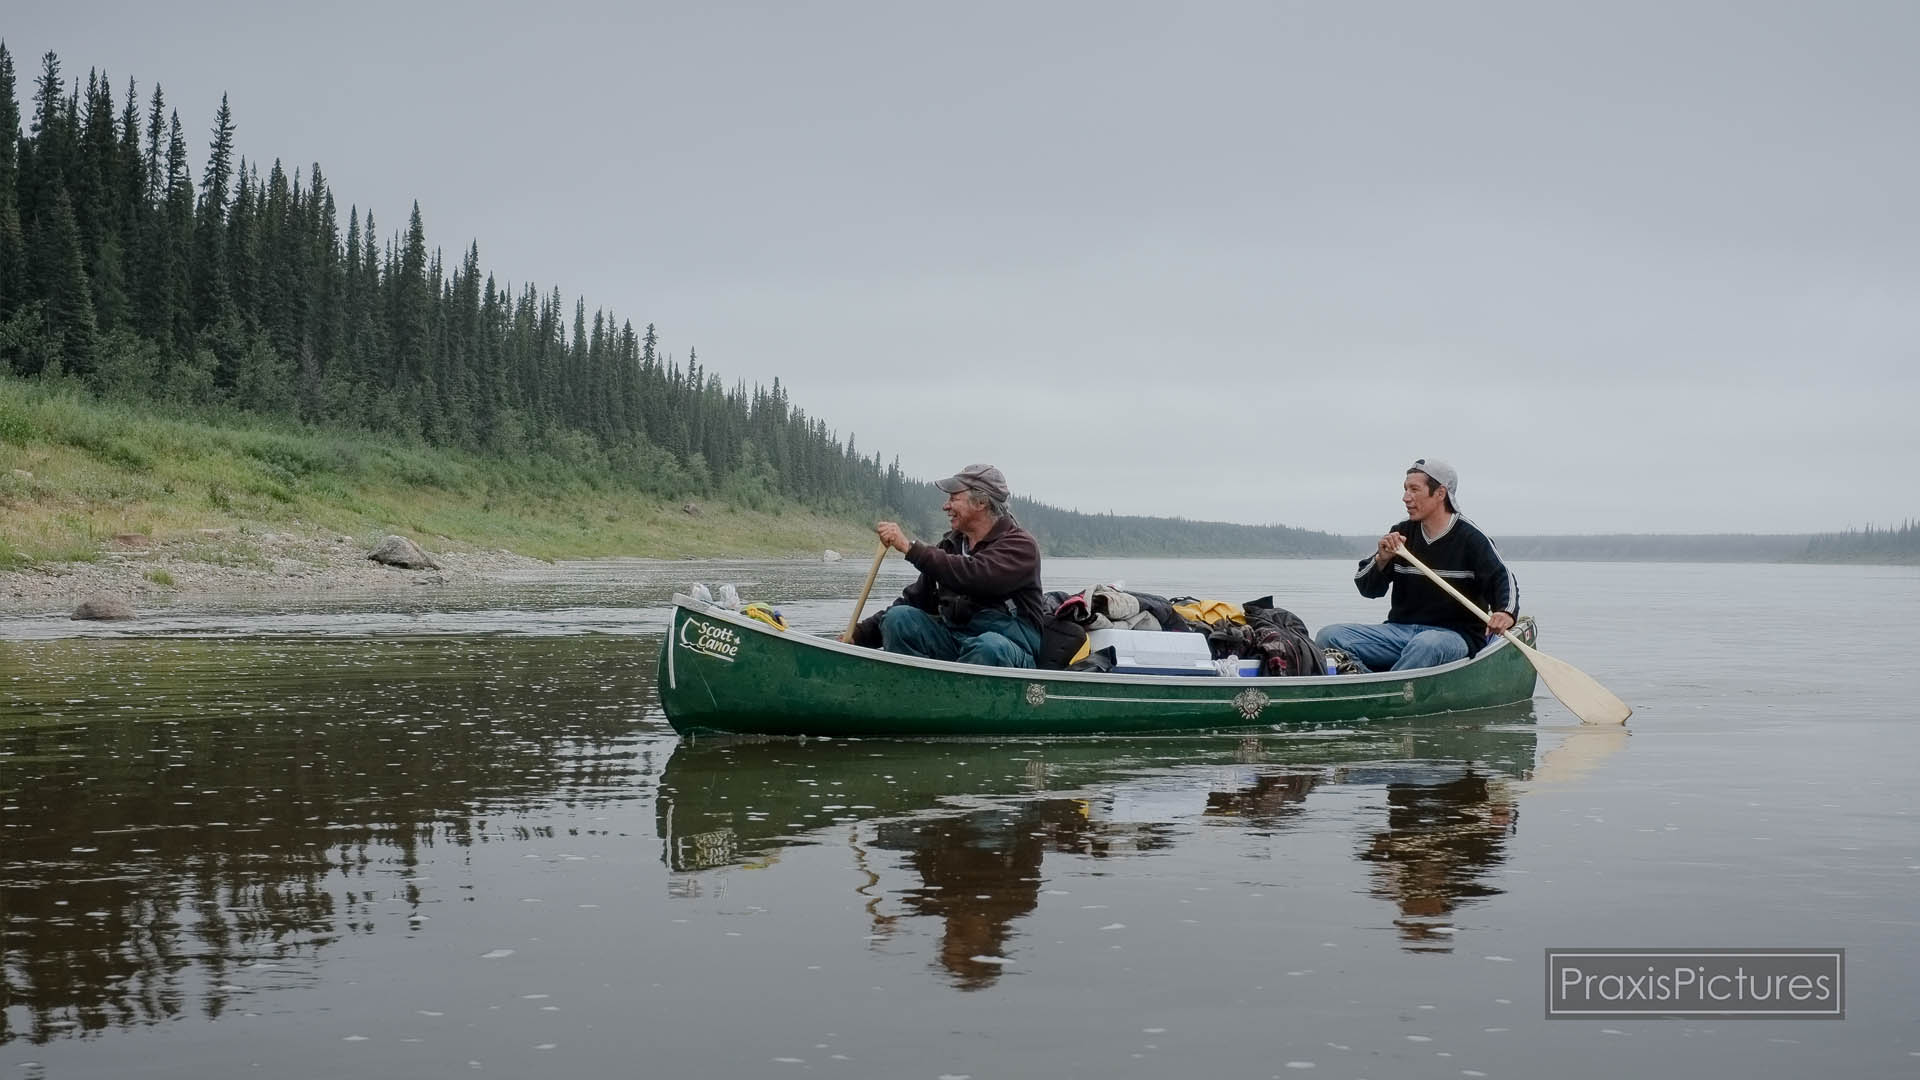 THE BREATHING LANDS  (Video)    The Elders of Kitchenuhmaykoosib Inninuwug First Nation say the water flows through their blood, and their bodies are built of the trout that swim in these clean rivers and lakes.   Taking care of their watershed is a relationship at the core of who they are as an Indigenous Nation, it is a responsibility handed down to them from the Creator through the teachings of their Elders.   (28:26 minutes)